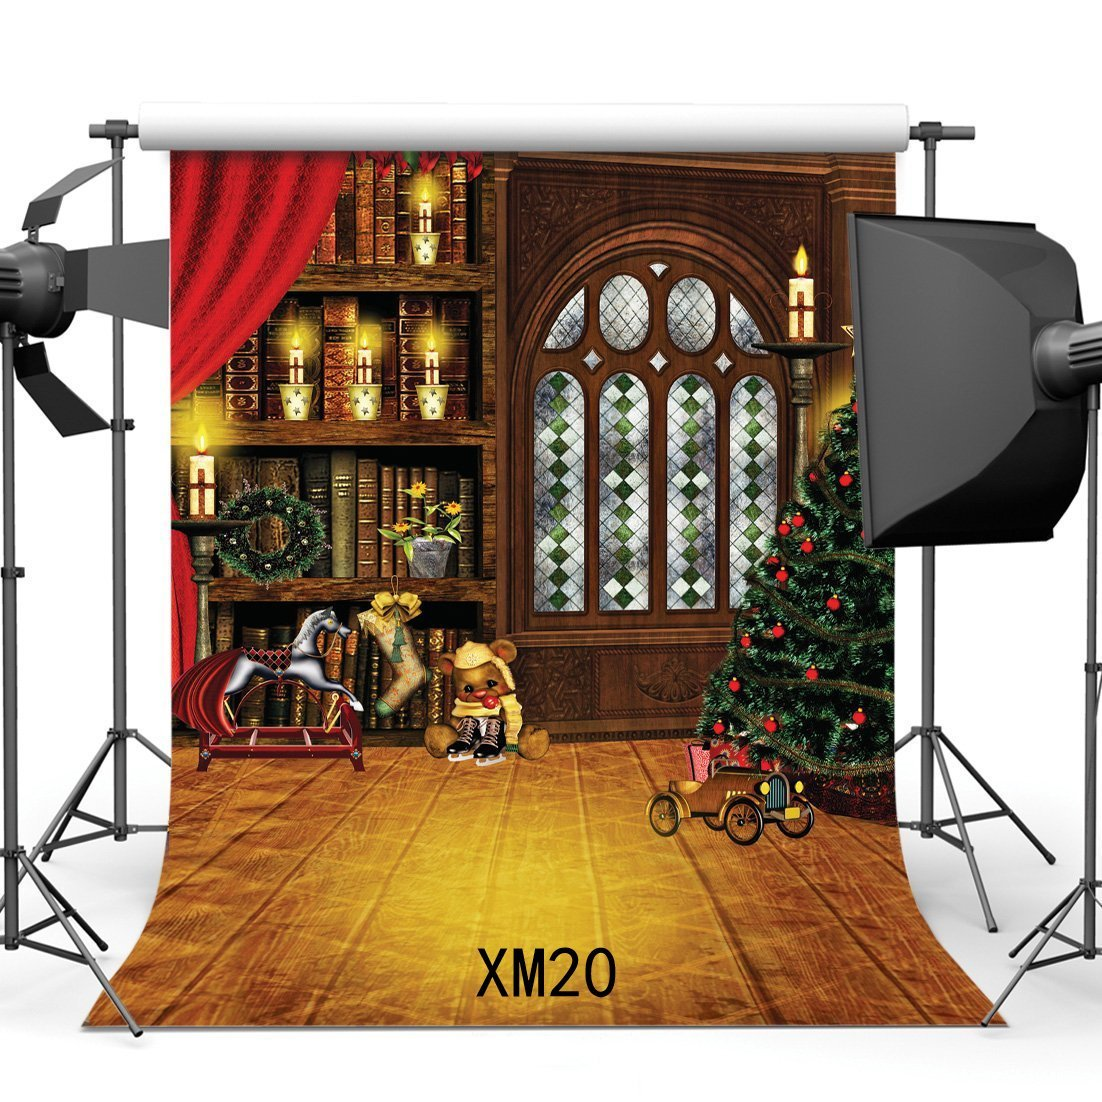 Erehome Polyester Fabric 5x7ft Photography Backdrop Christmas Tree Candles Bookshelf Wooden Horse Vintage Wood Floor Happy New Year Portraits Background Photo Studio Prop Walmart Canada